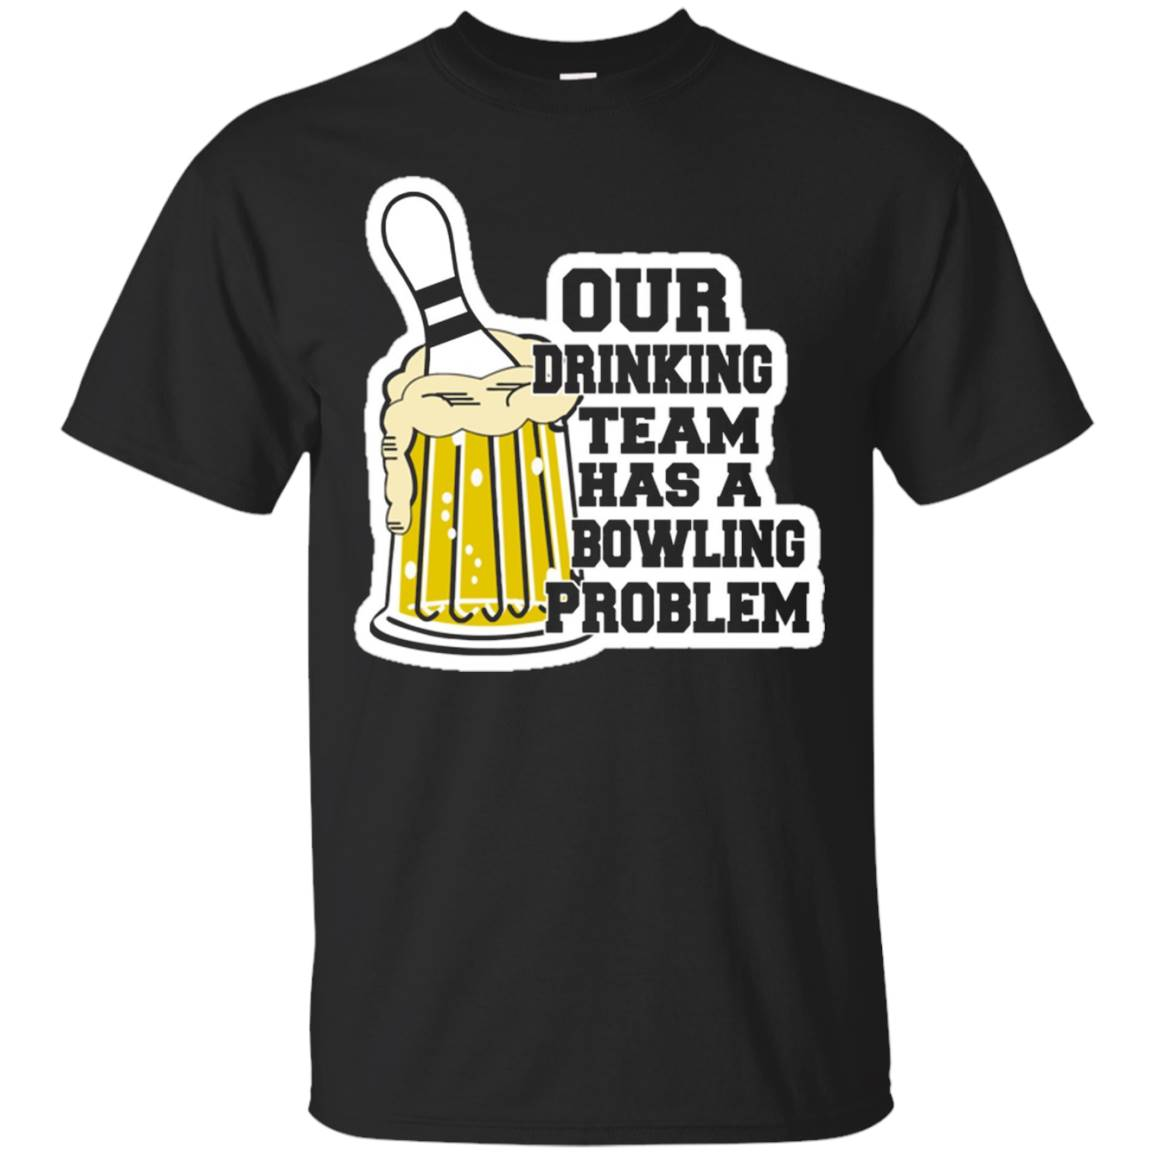 Our Drinking Team Has A Bowling Problem – Funny Beer Tshirt